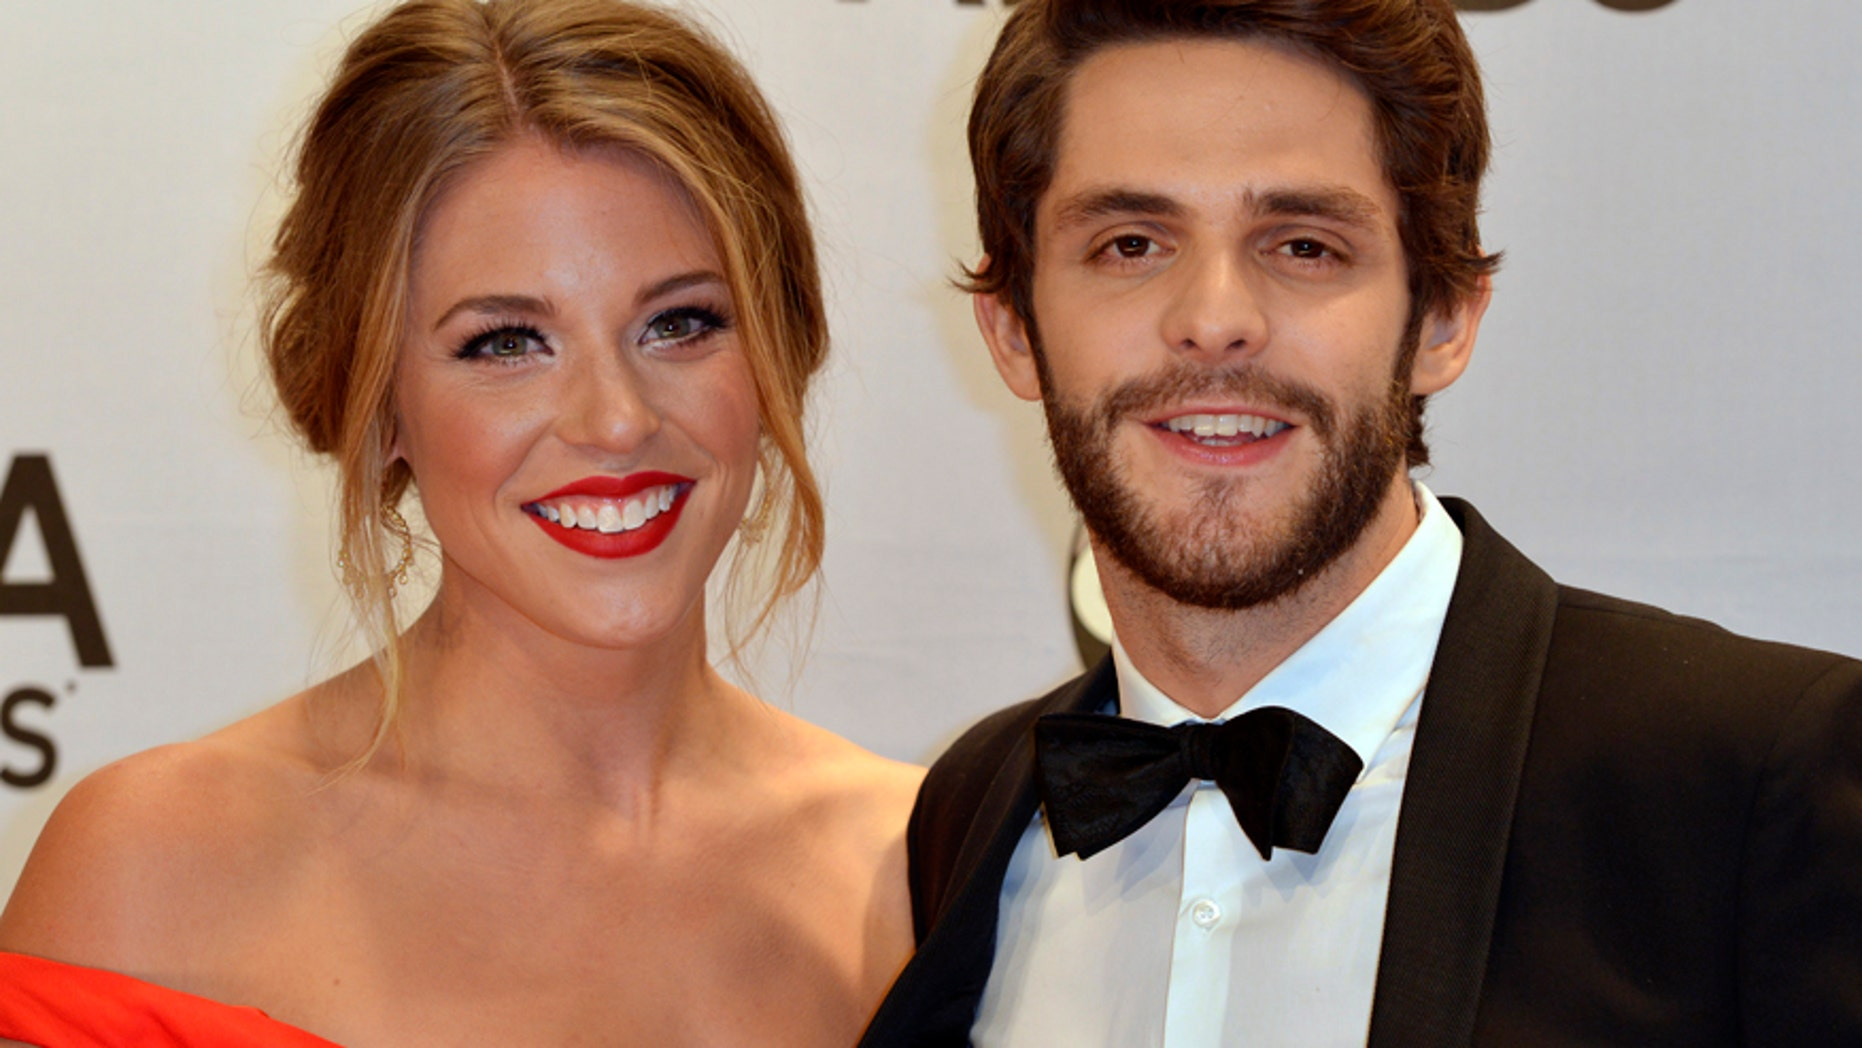 Singer Thomas Rhett arrives with his wife Lauren at the 48th Country Music Association Awards in Nashville, Tennessee November 5, 2014.  REUTERS/Eric Henderson (UNITED STATES  - Tags: ENTERTAINMENT)  (CMA - ARRIVALS) - RTR4D0T6